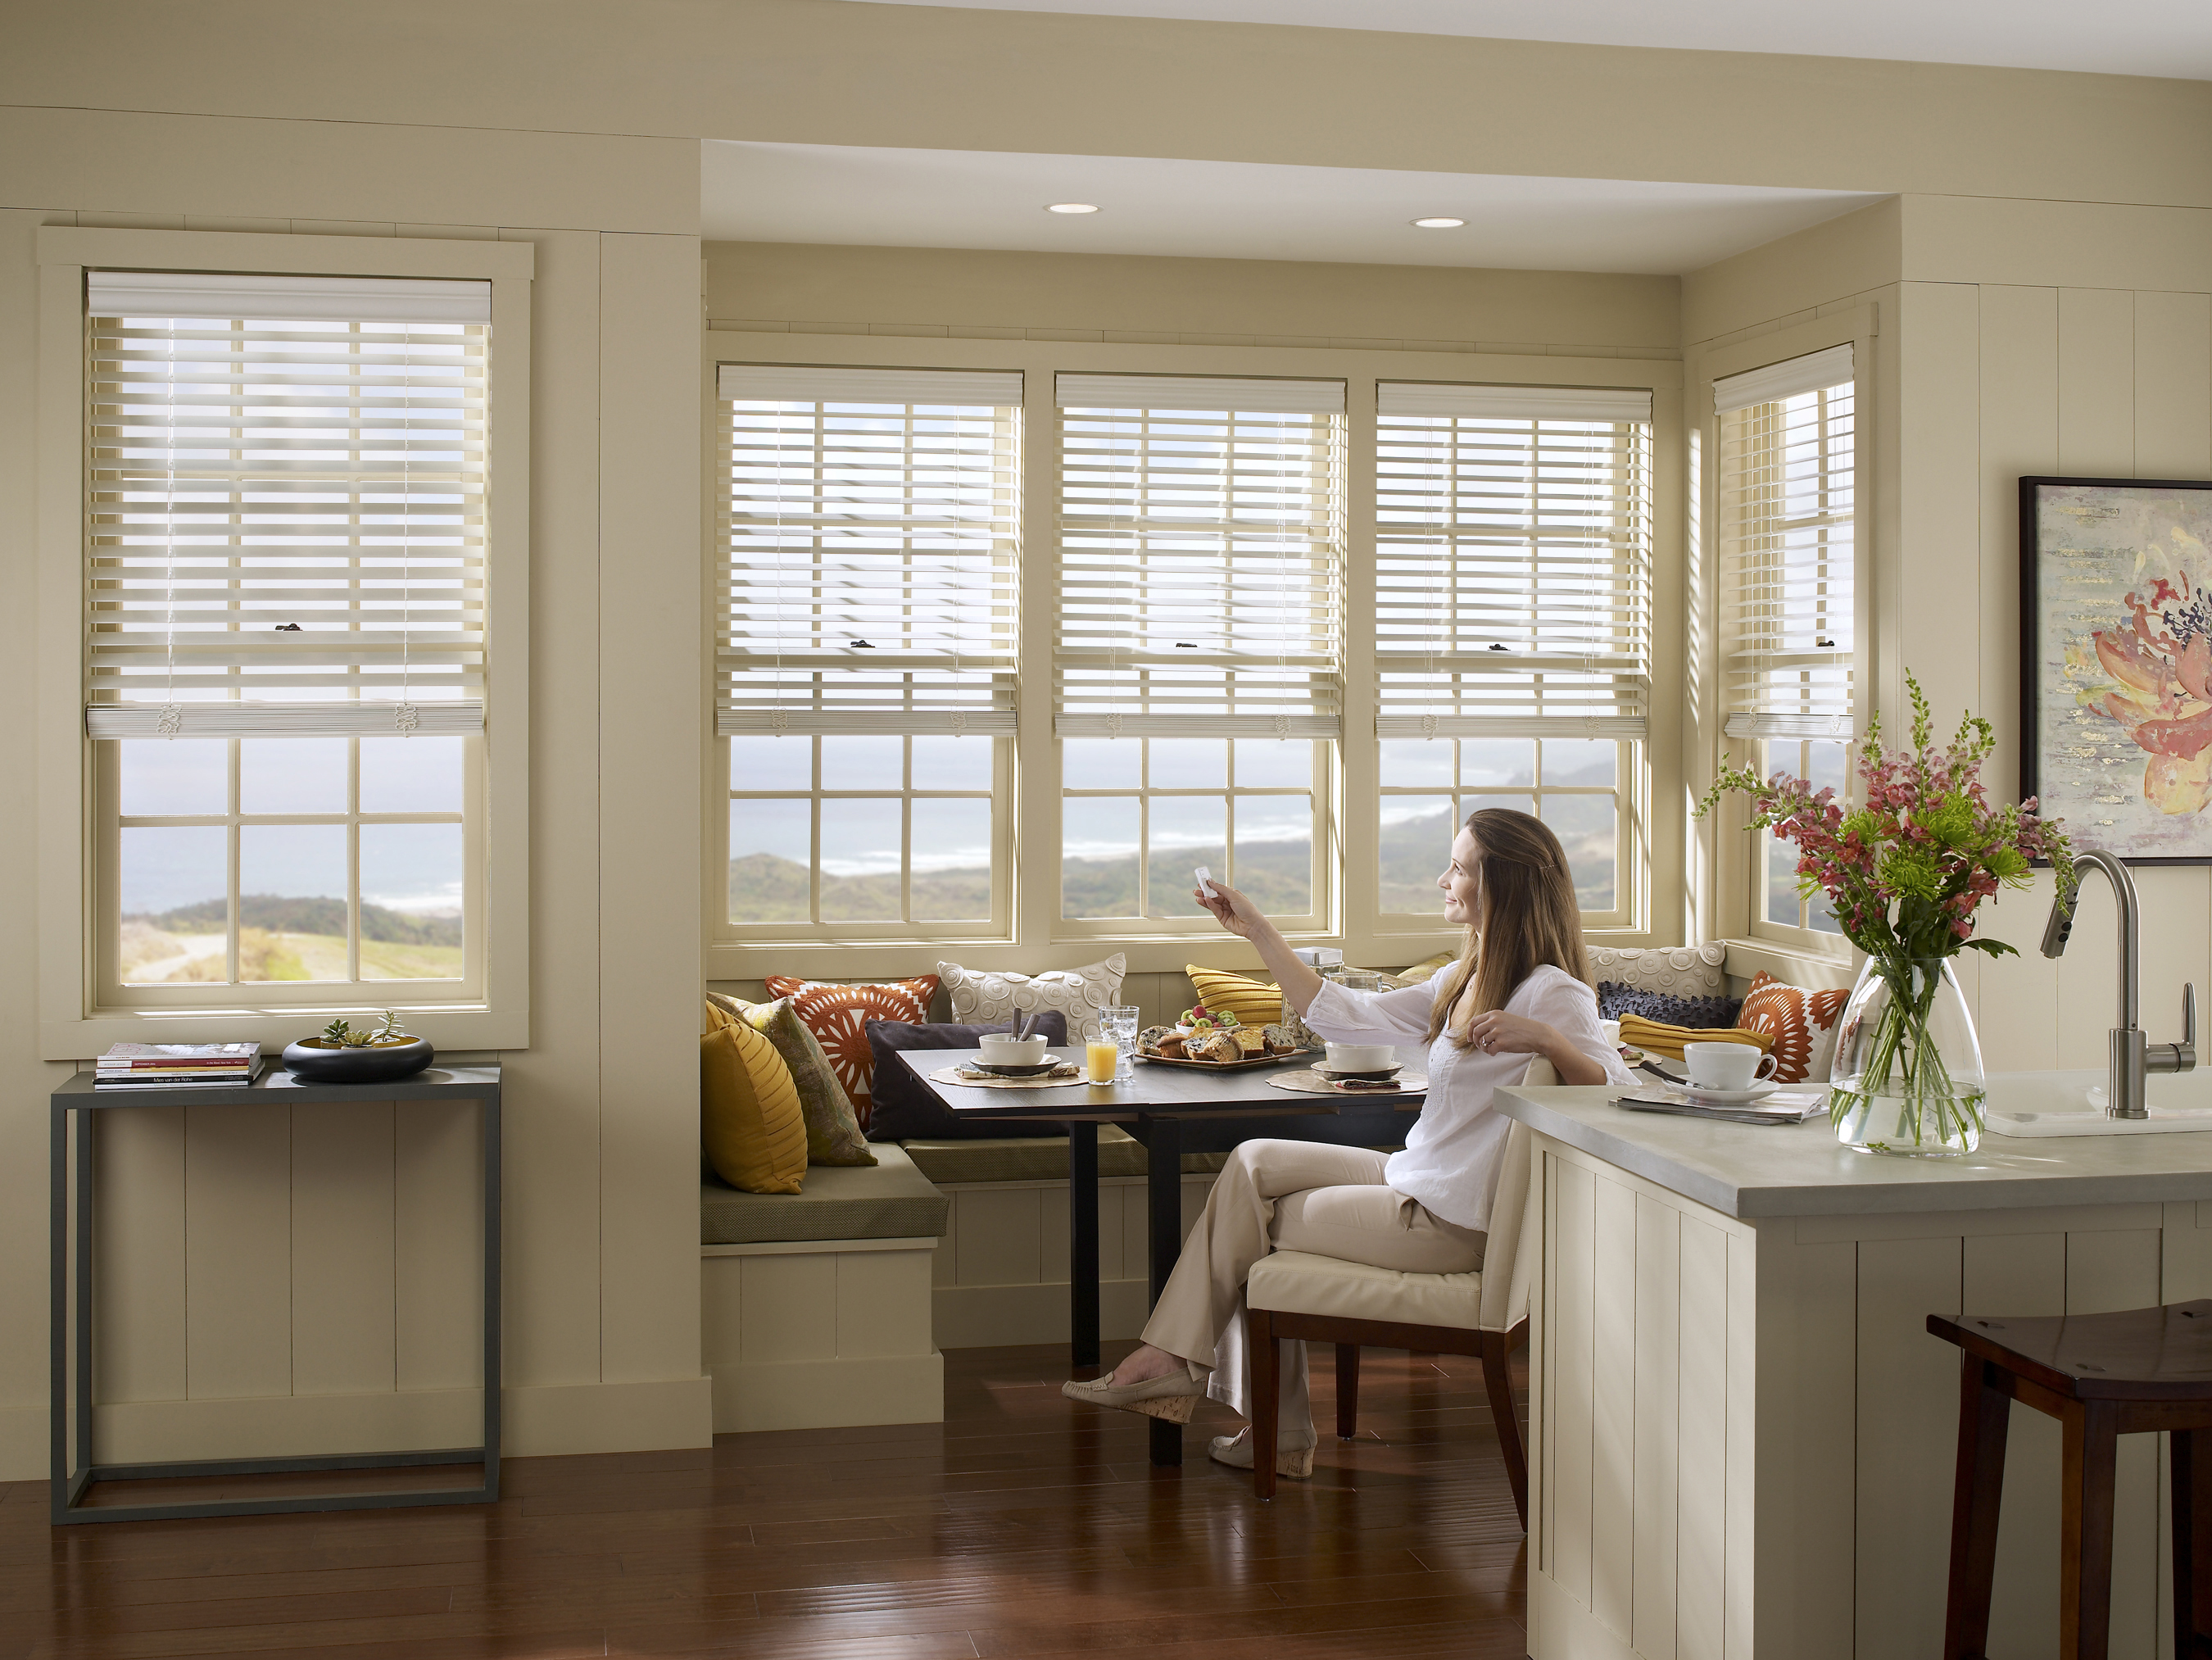 Types of residential windows - Lutron Product Photography